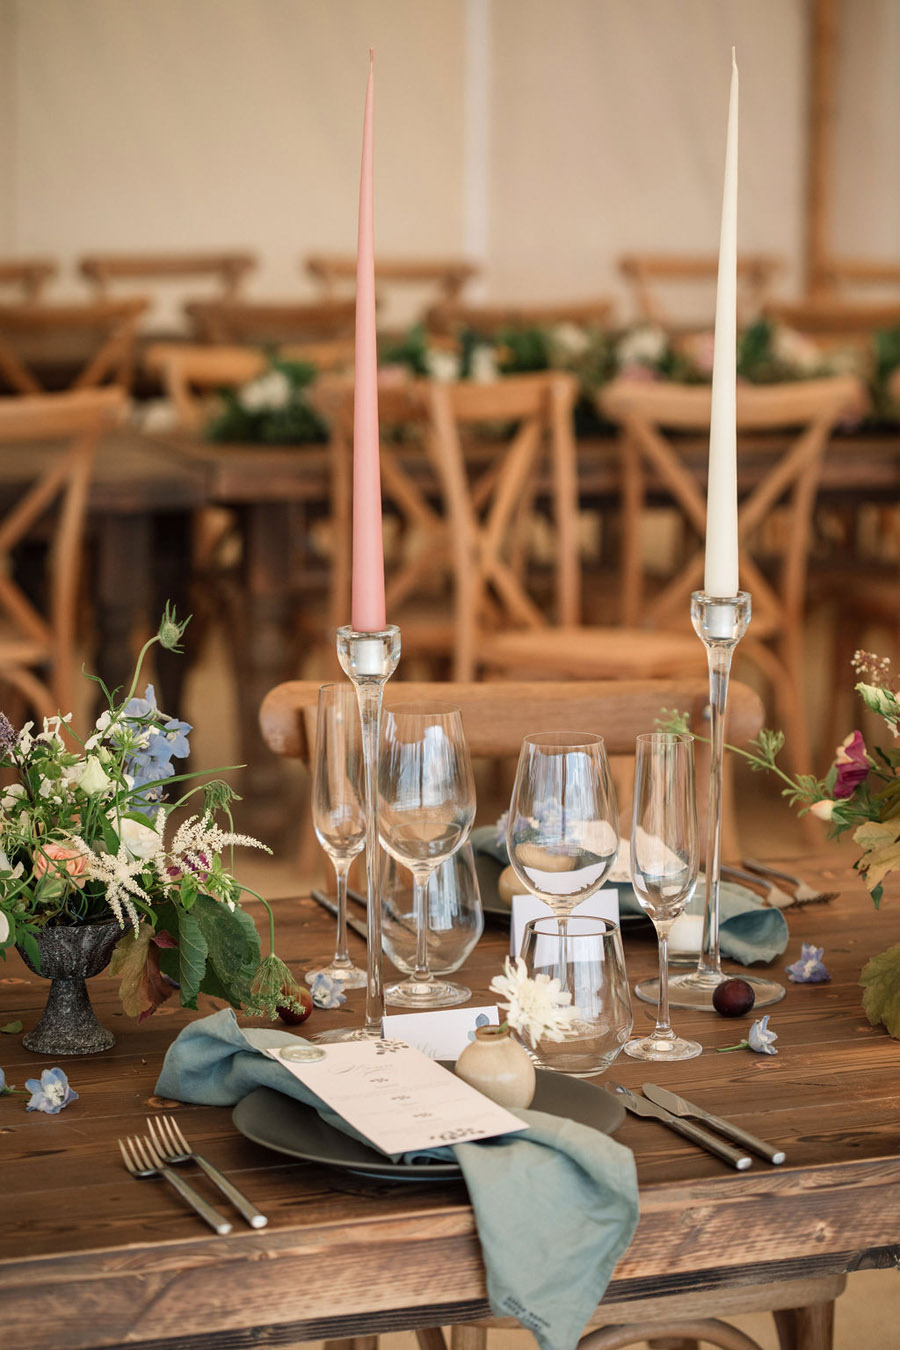 Evening sunset wedding inspiration at Willow Grange Farm, with Becky Harley Photography (14)